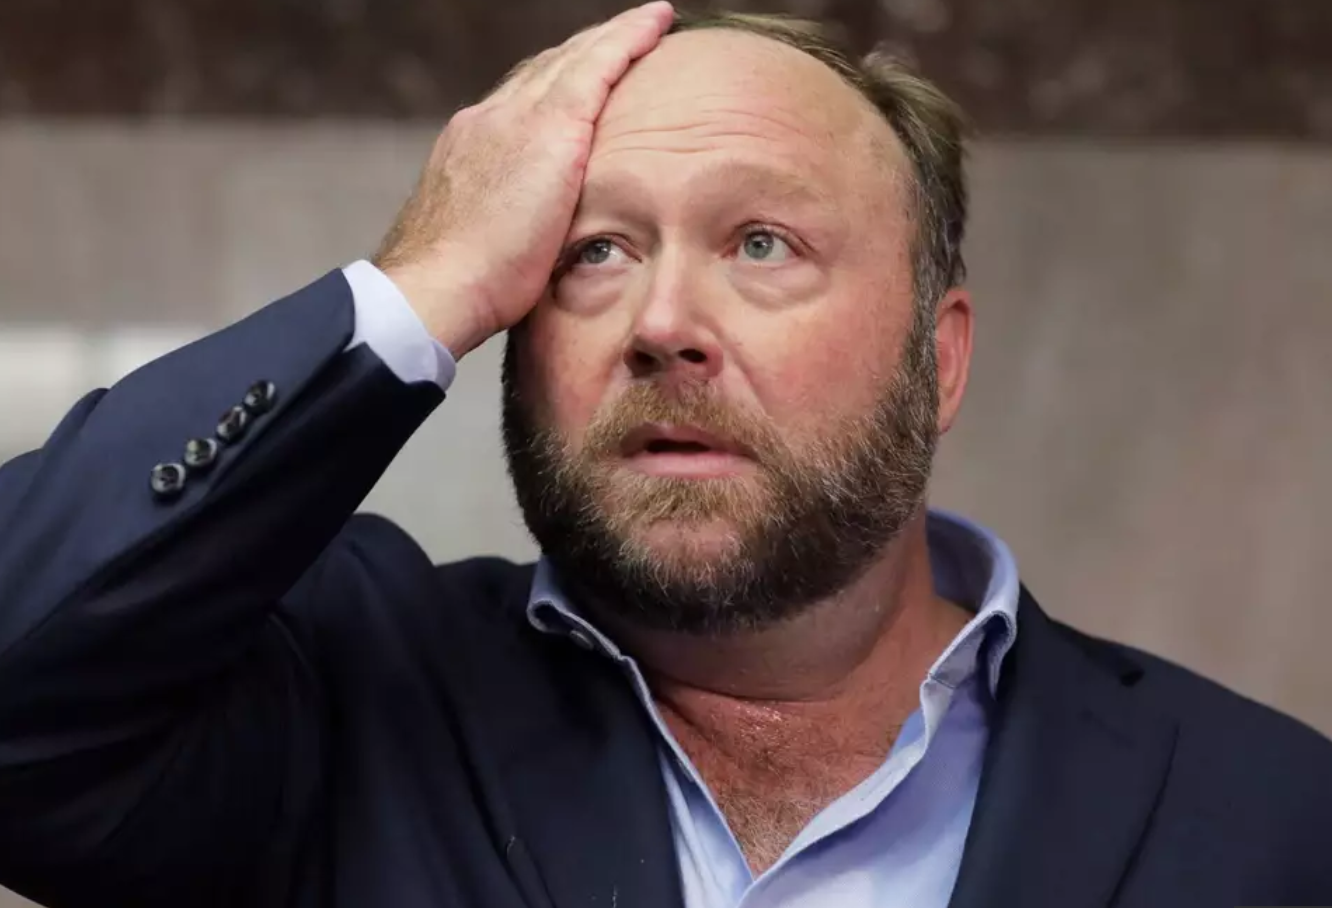 Controversial Radio Host Alex Jones